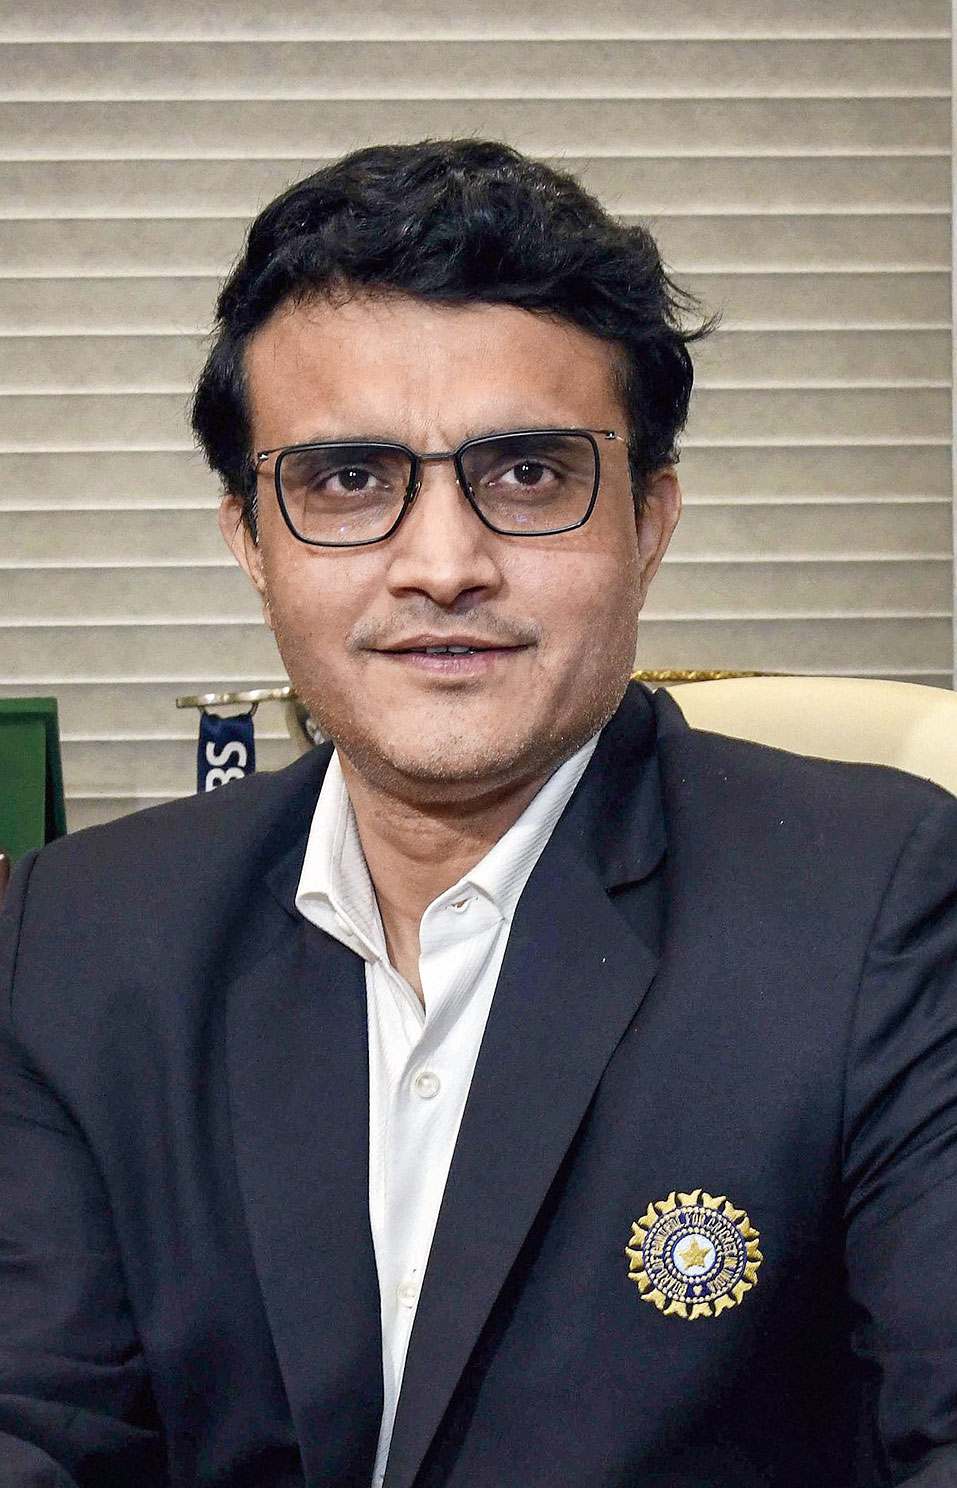 BCCI president Sourav Ganguly has already announced that the All Stars game — with two teams from the pool of registered IPL cricketers to raise money for charity — would be an annual affair going forward.